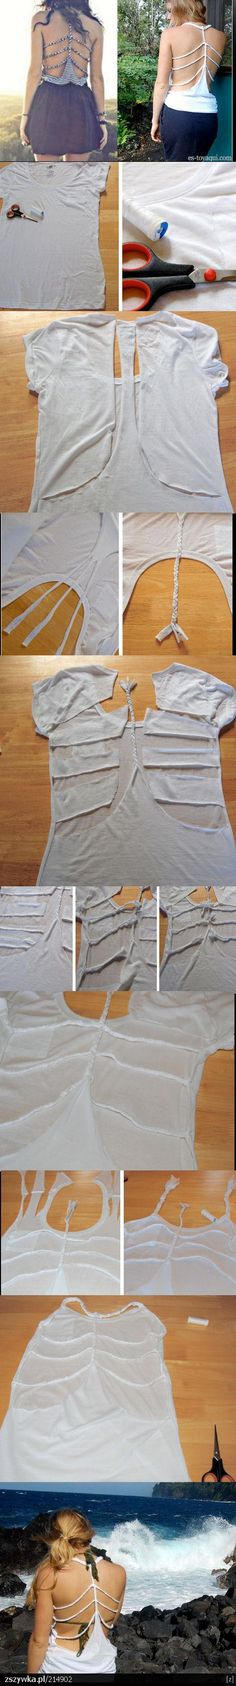 Braided t-shirt. #Sorority #Clothing #DIY #Greek #Shirts